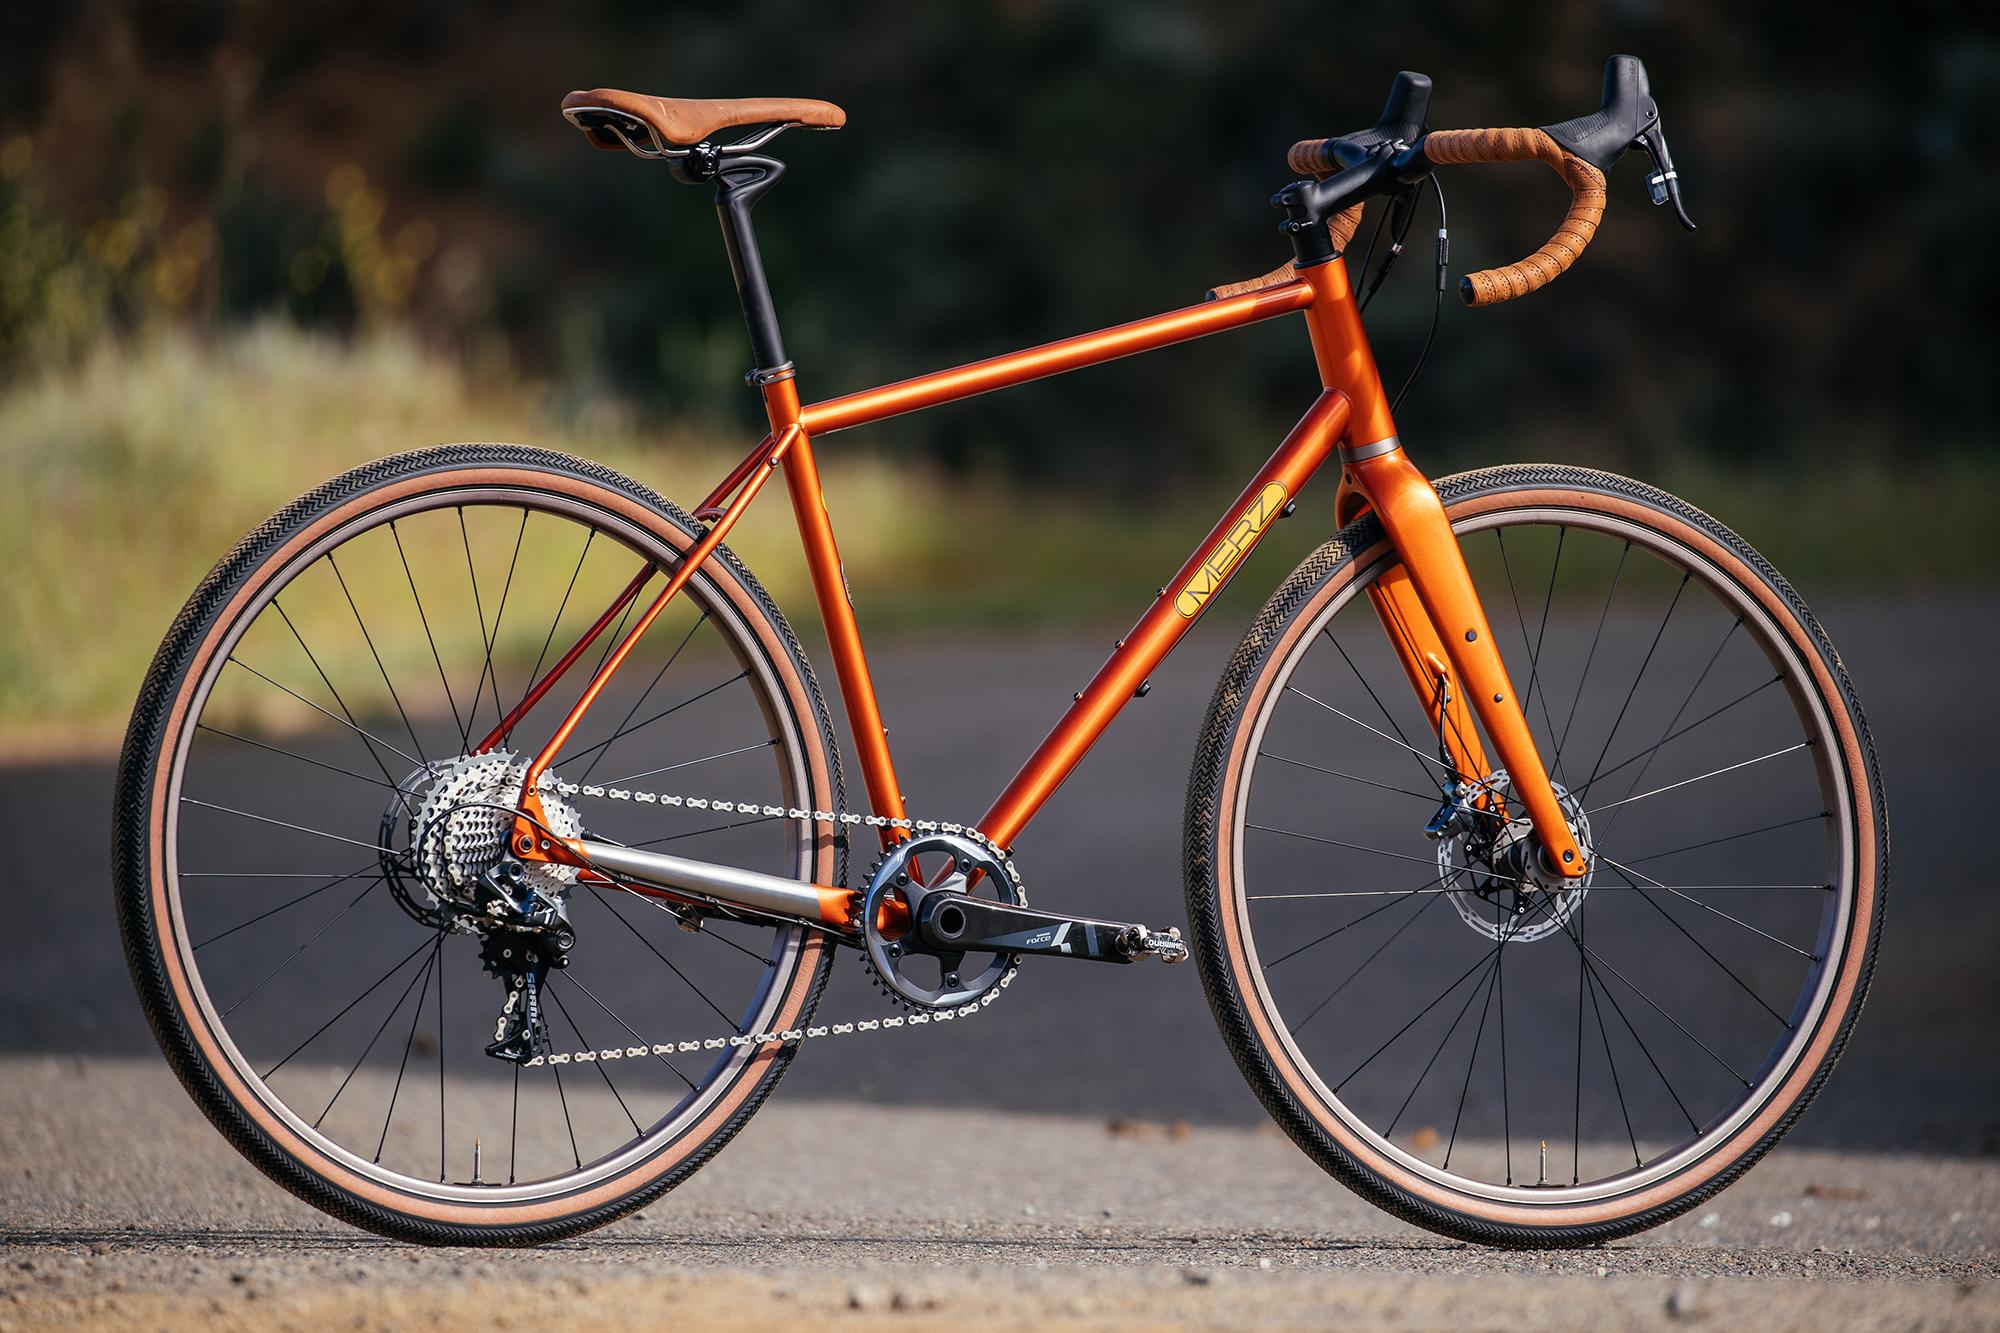 The Jim Merz Edition Specialized Sequoia